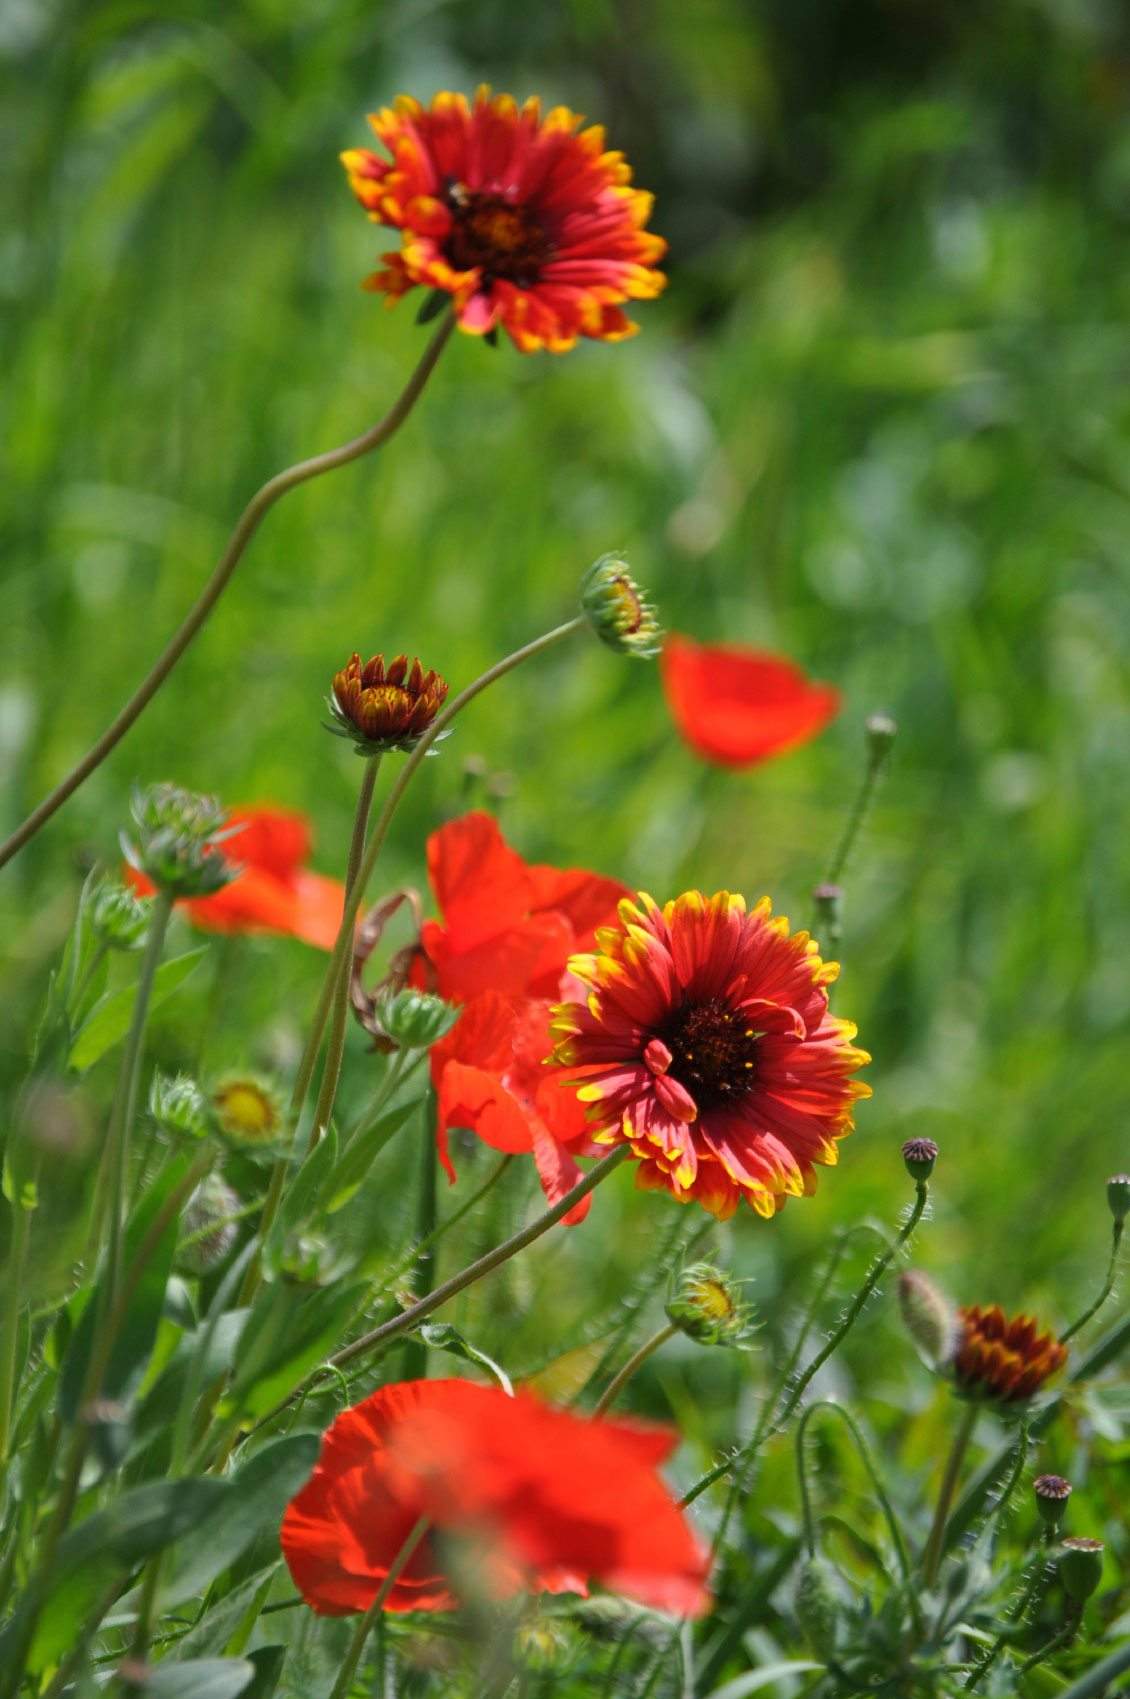 Growing Blanket Flowers Tip For The Care Of Blanket Flowers